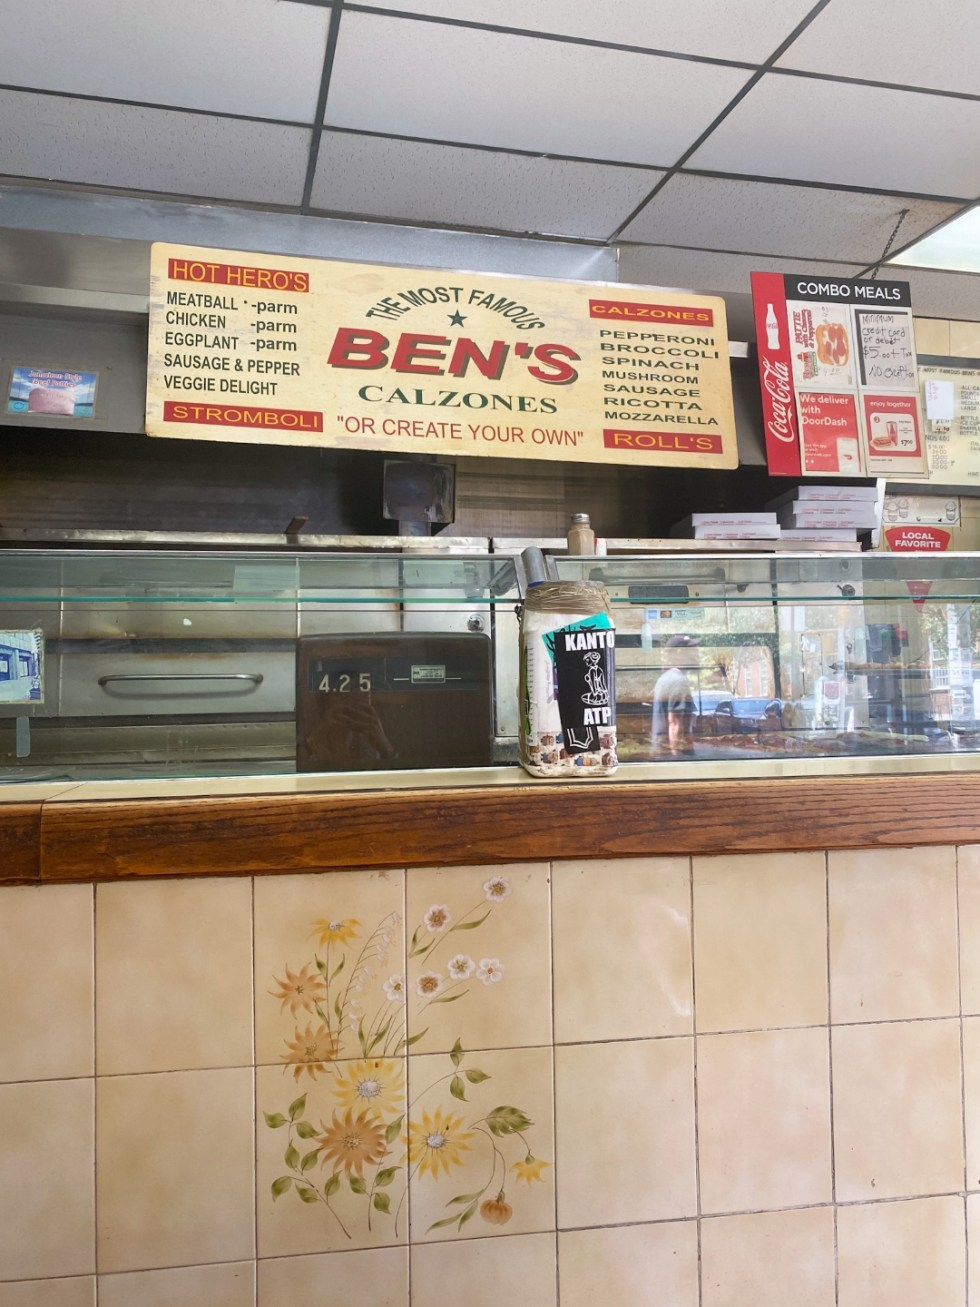 NYC Summer Weekend: Things to Do in NYC in the Summer - I'm Fixin' To - @imfixintoblog   NYC Summer Weekend by popular NC travel blog, I'm Fixin' To: image of Bens Calzones.